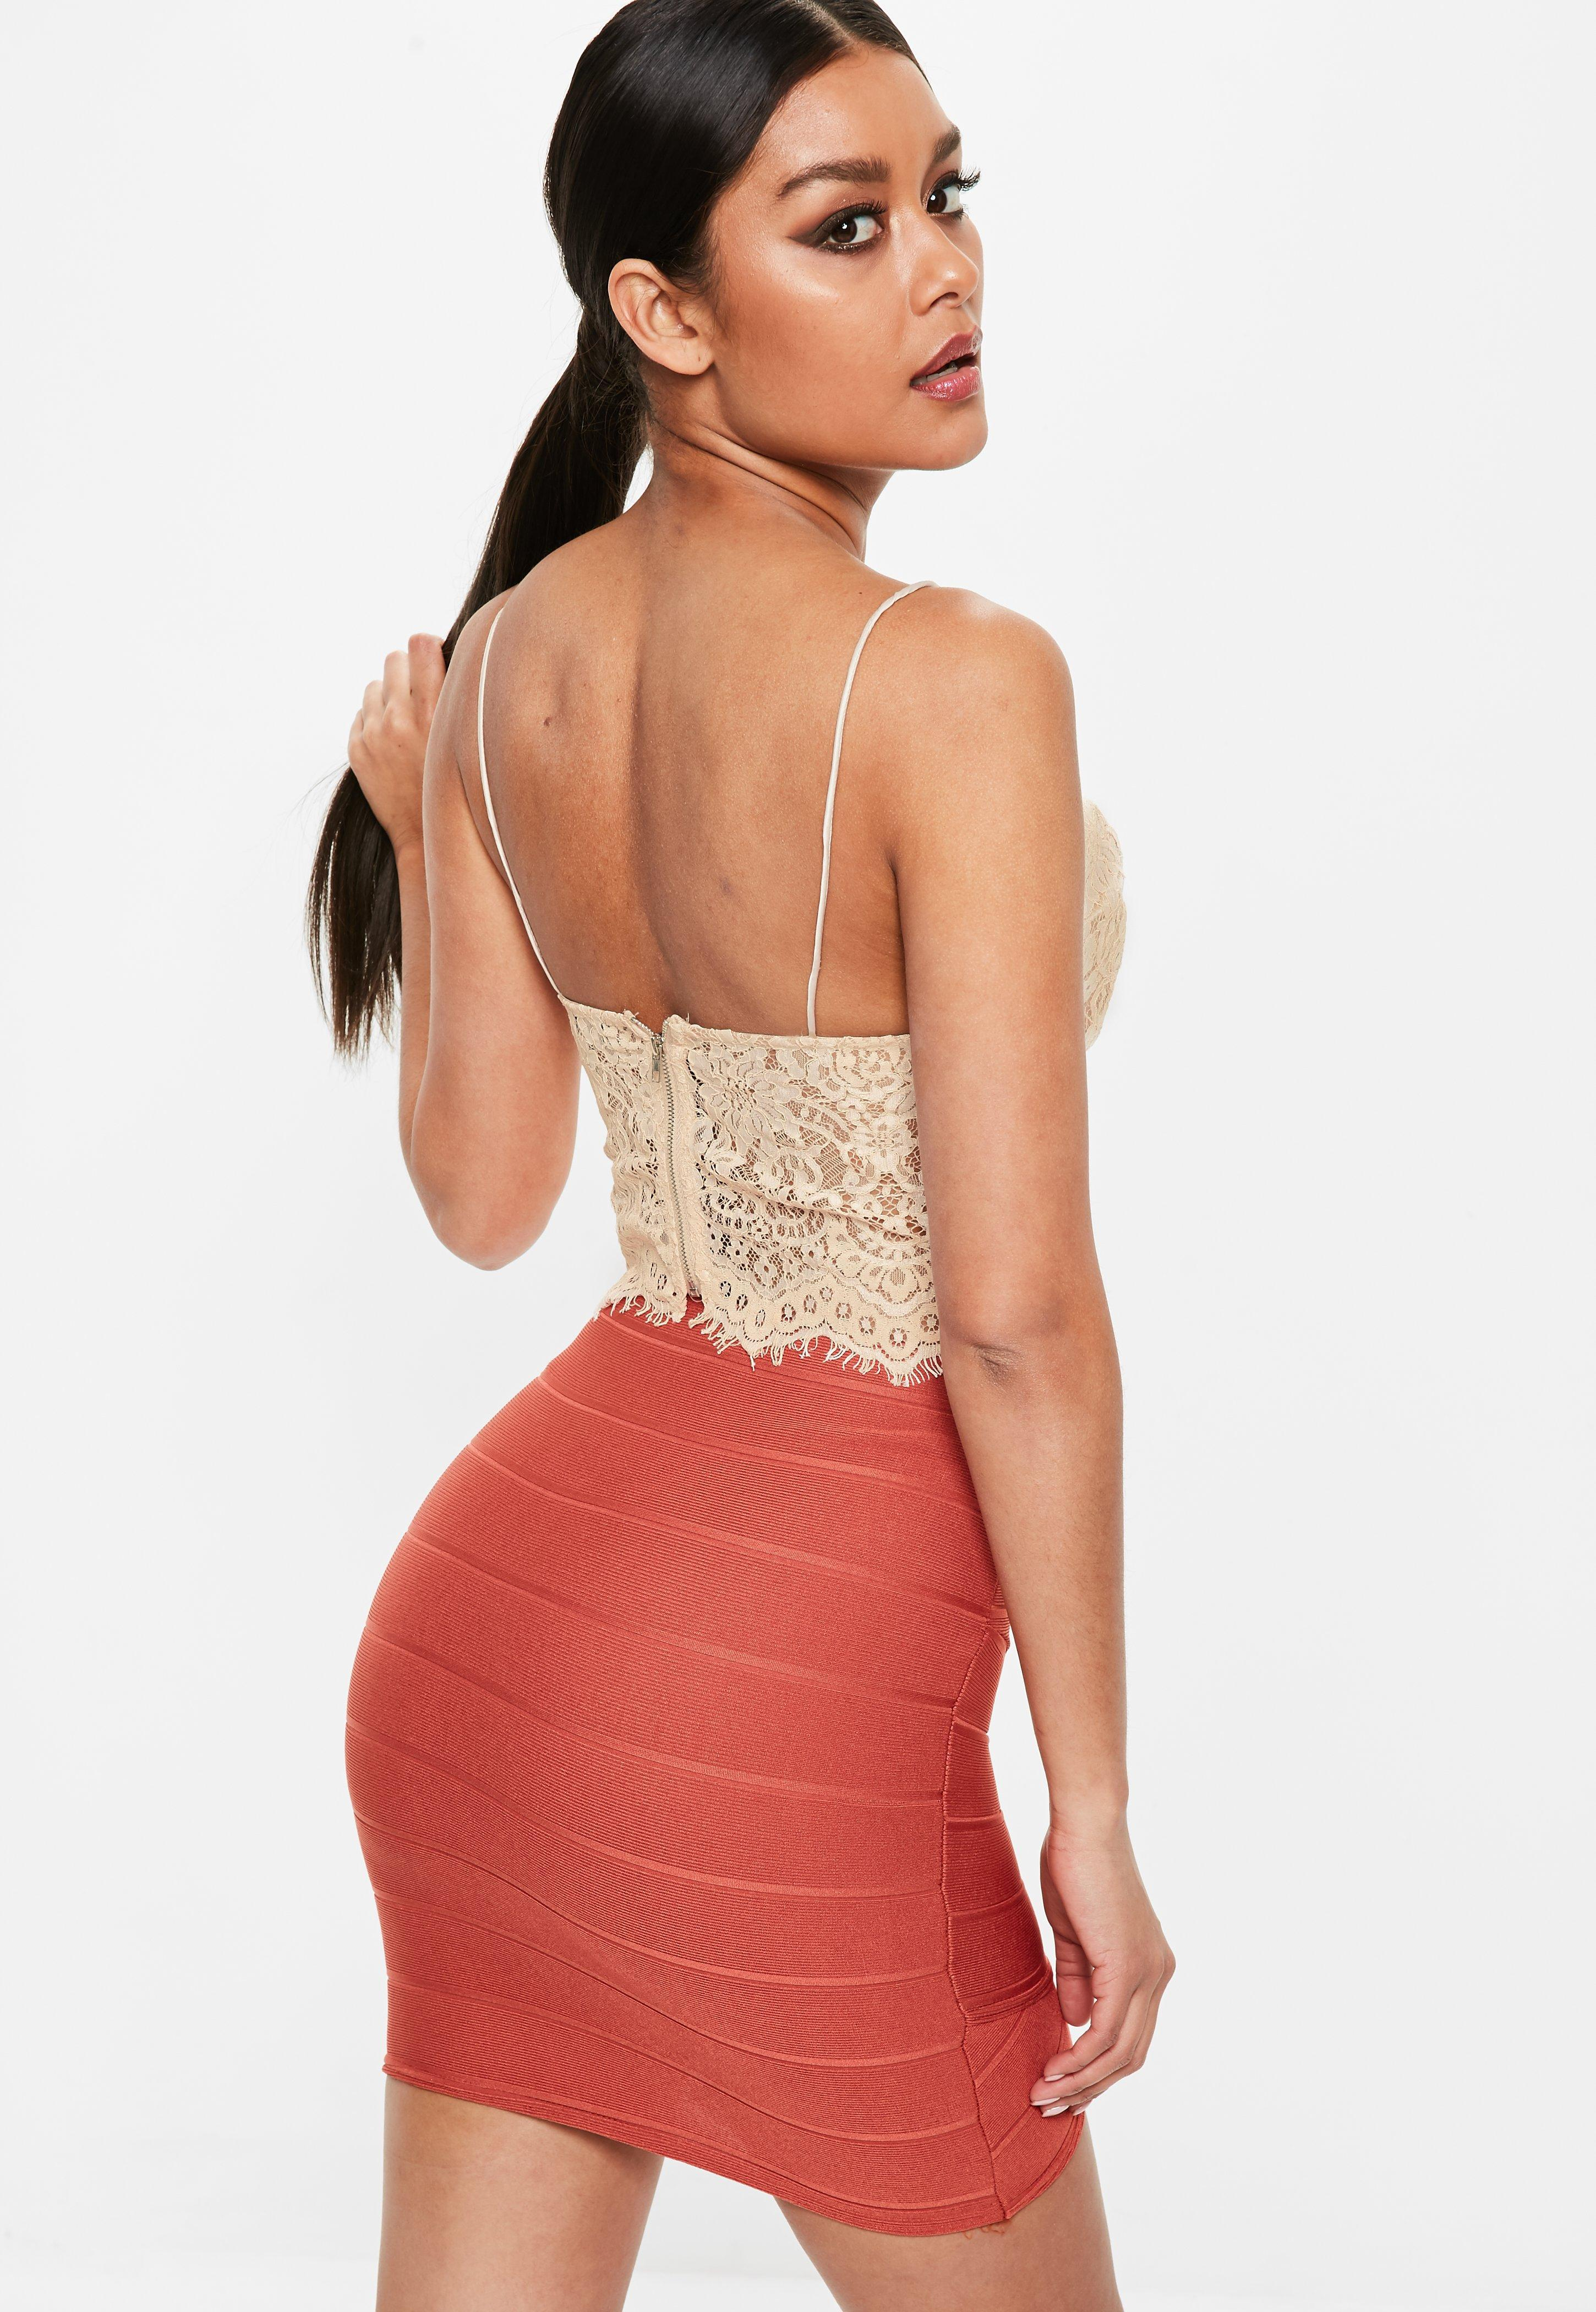 Missguided Petite Nude Lace Cami Top - Lyst